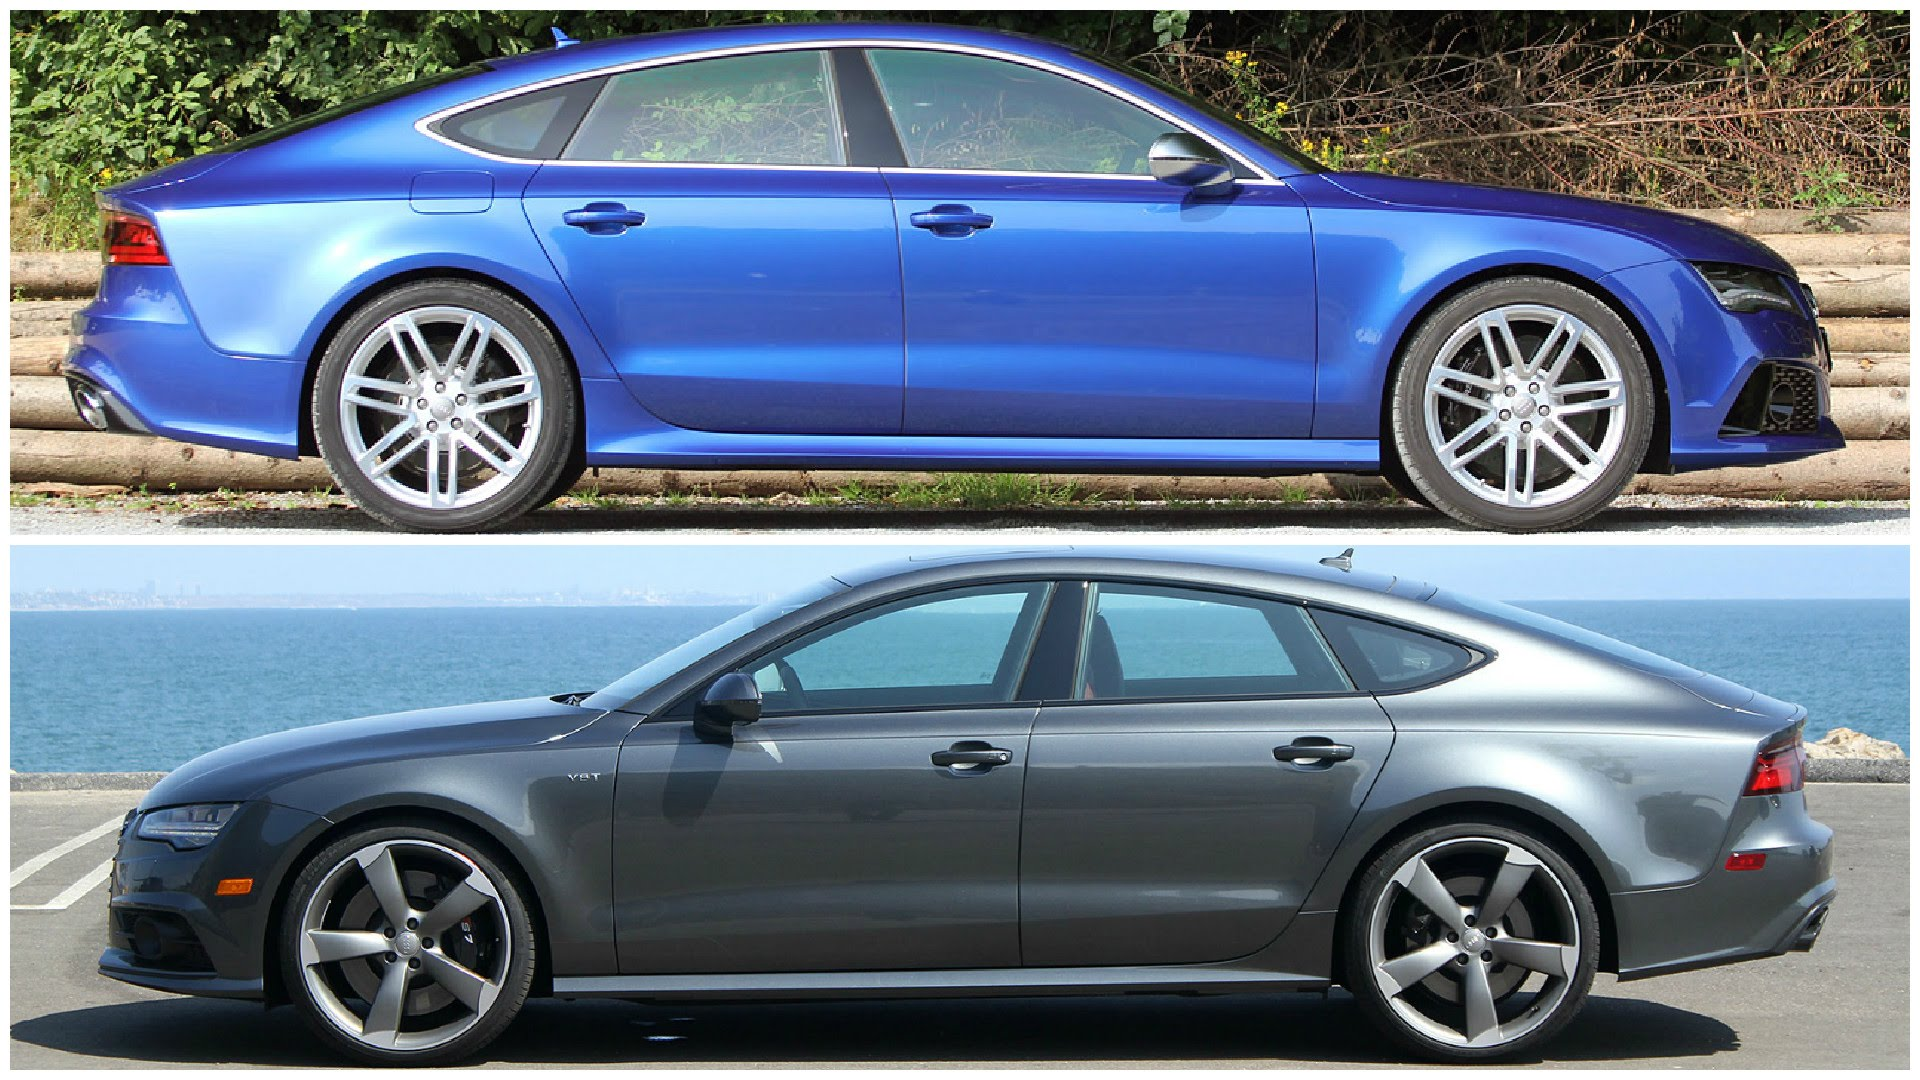 An Extensive Review on Audi S7 and Audi RS7 - Emotoauto.com